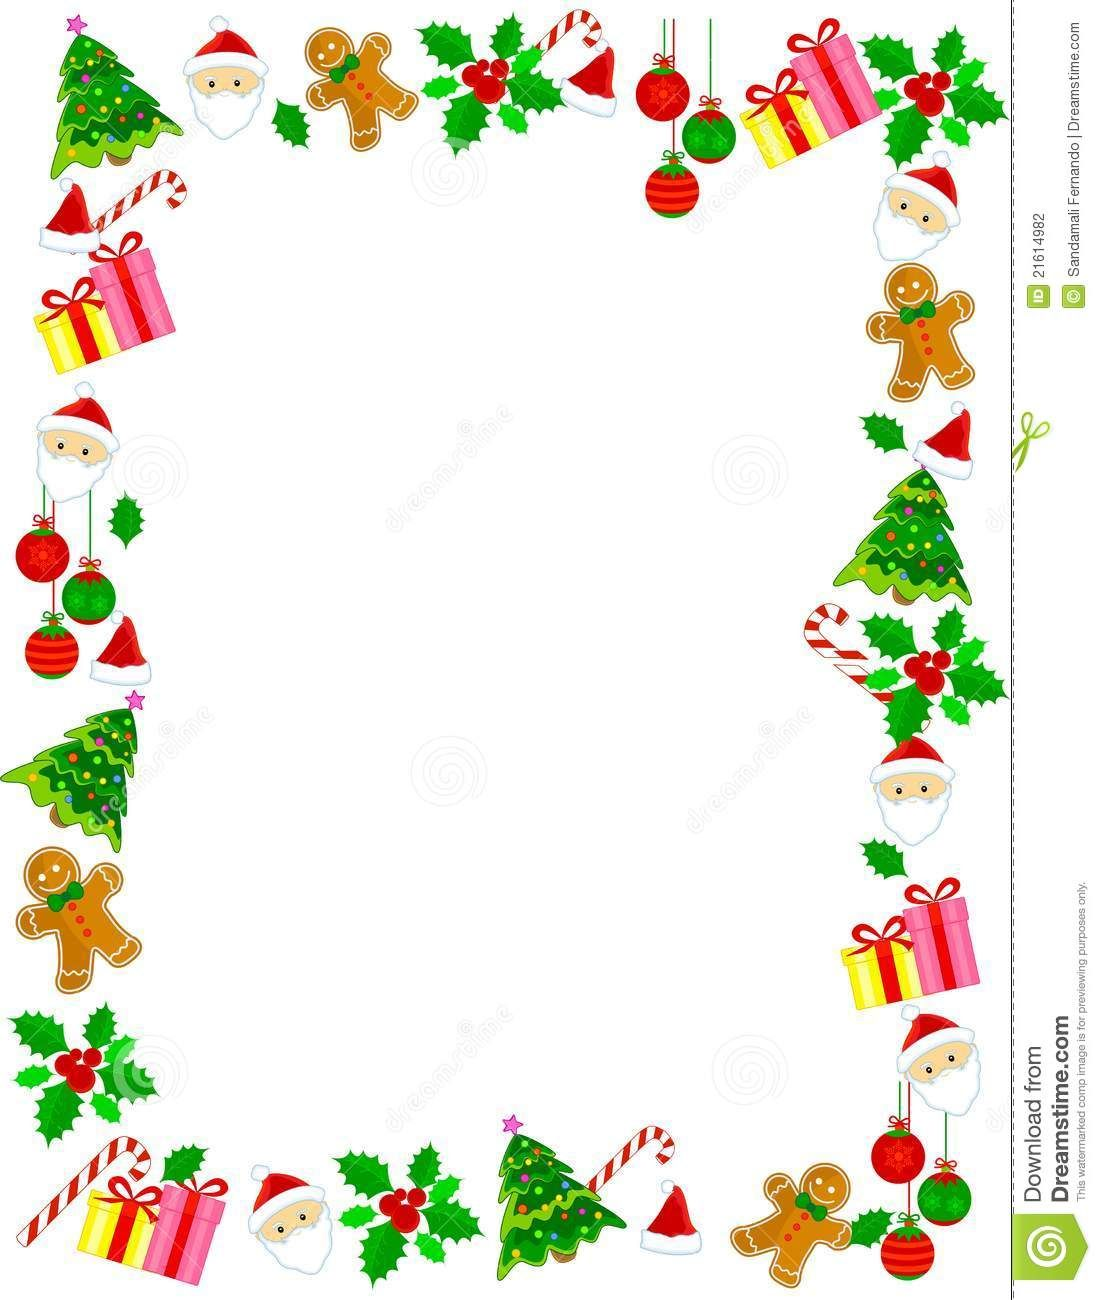 Christmas Border / Frame - Download From Over 50 Million High ...